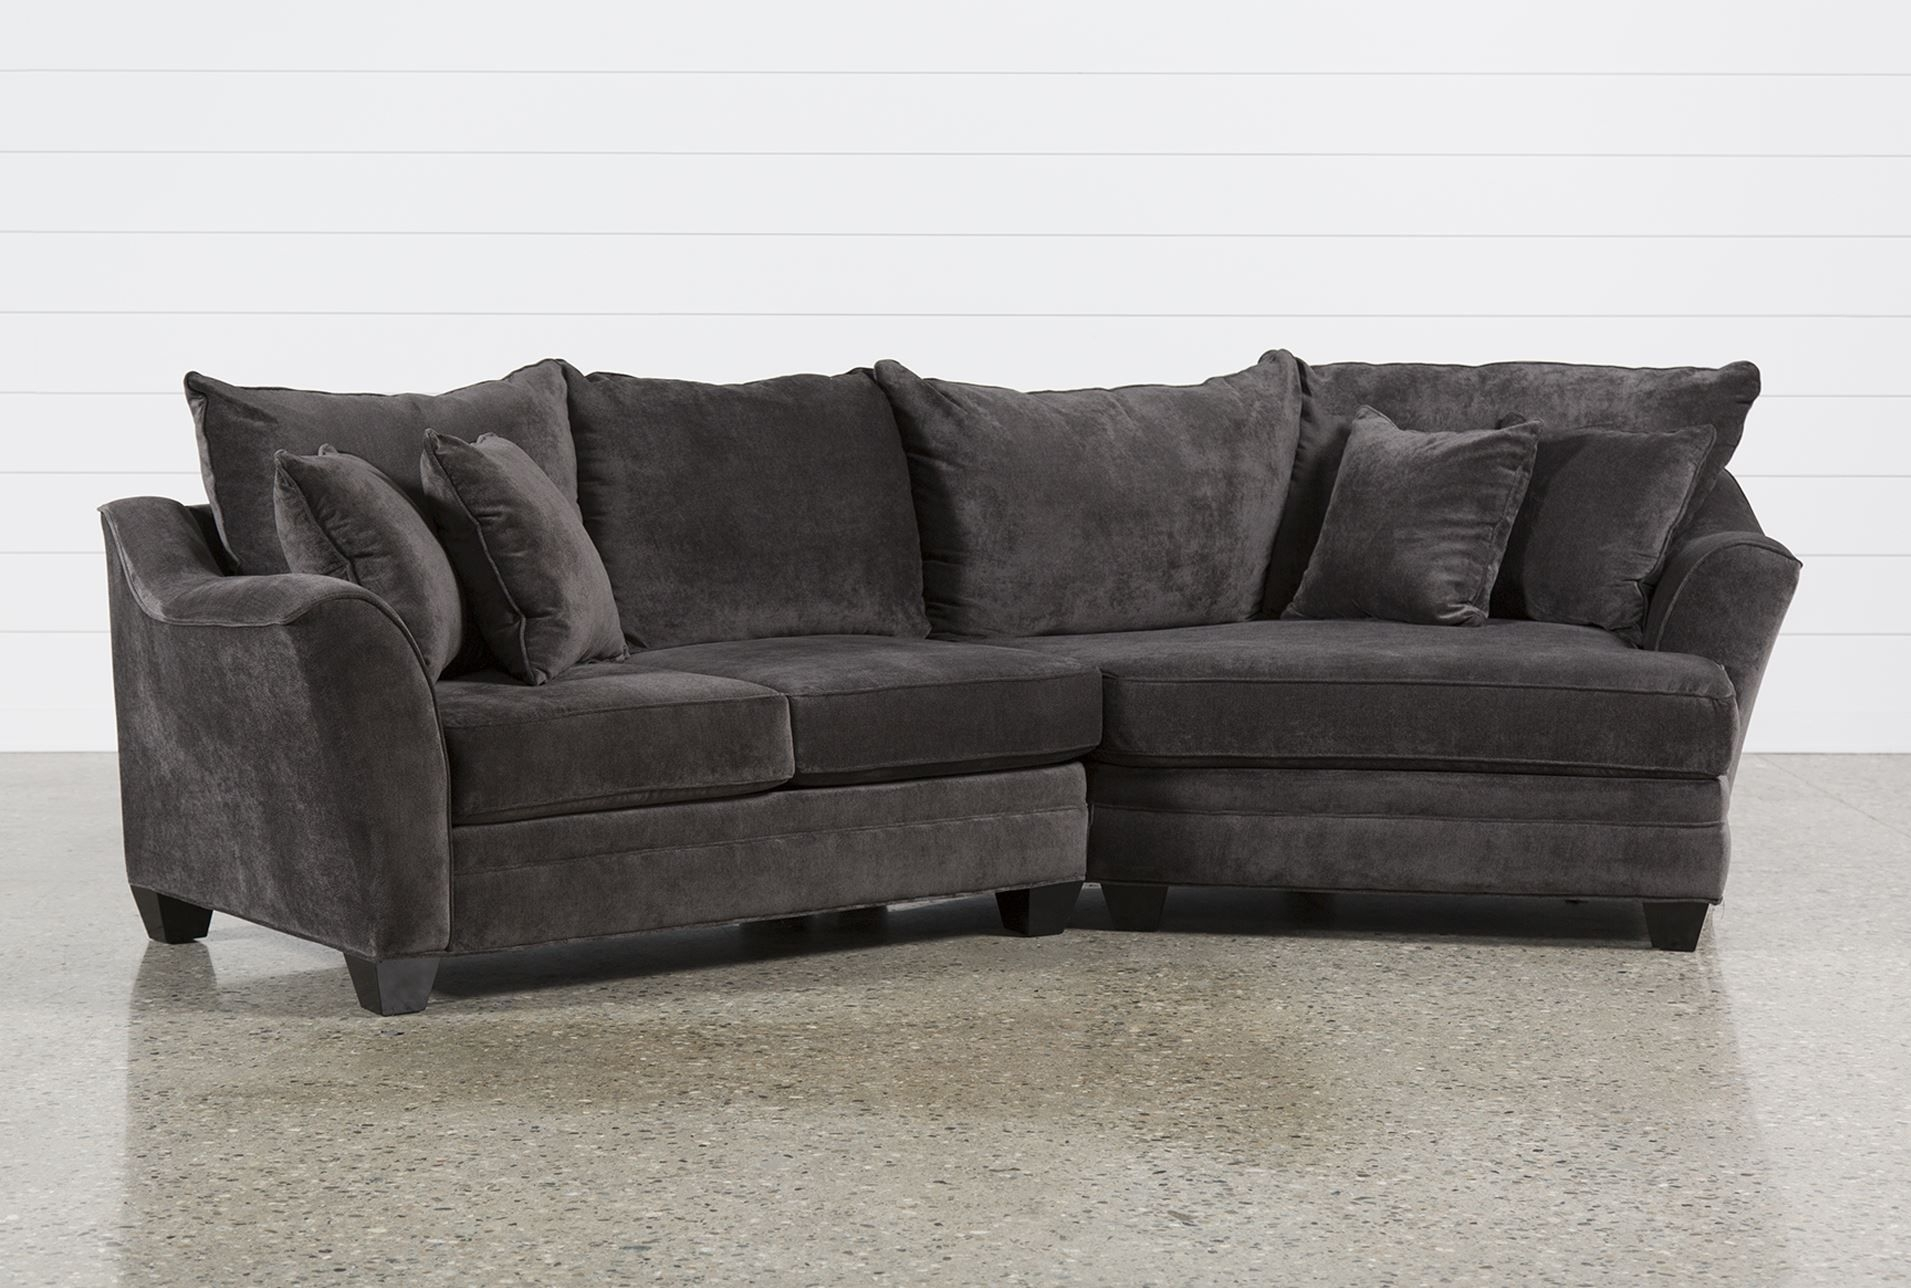 Sectional Sofas Living Spaces for Delano 2 Piece Sectionals With Raf Oversized Chaise (Image 29 of 30)